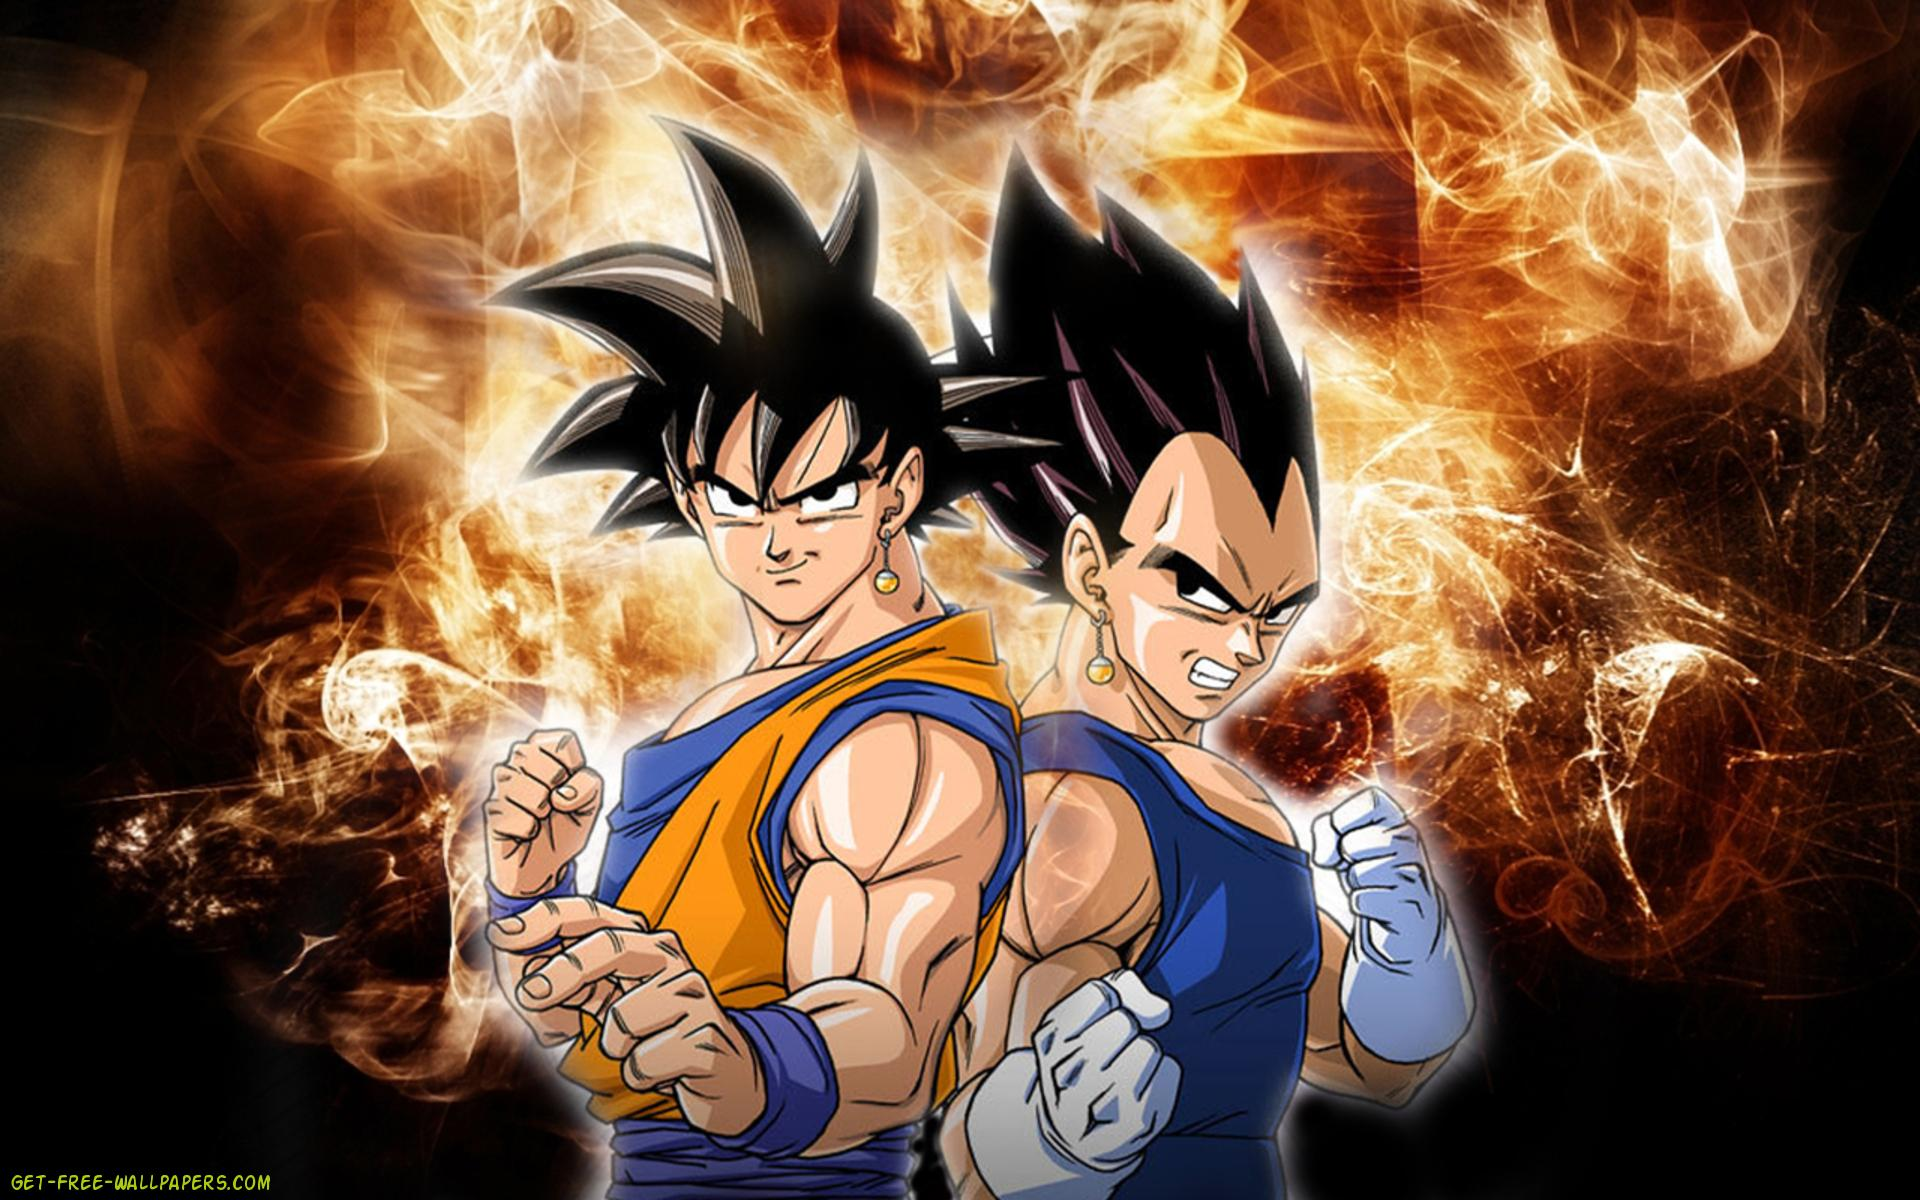 Dragon Ball Z Goku vs Vegeta Wallpaper Details and Download Free